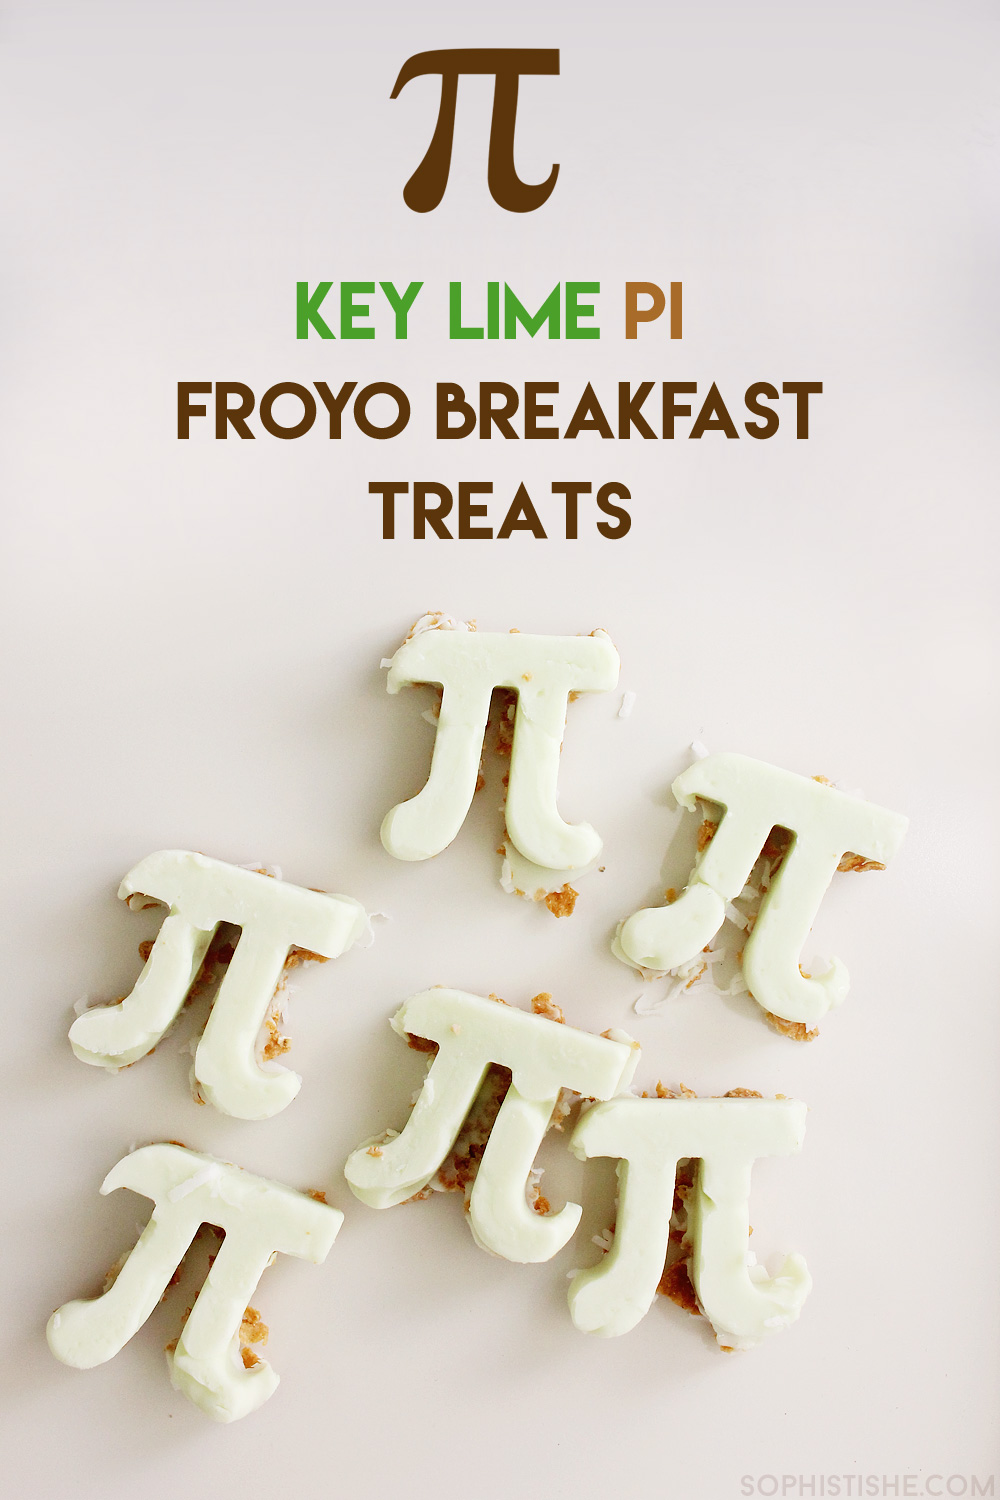 Key Lime Pi Froyo Breakfast Treats - Happy Pi Day!